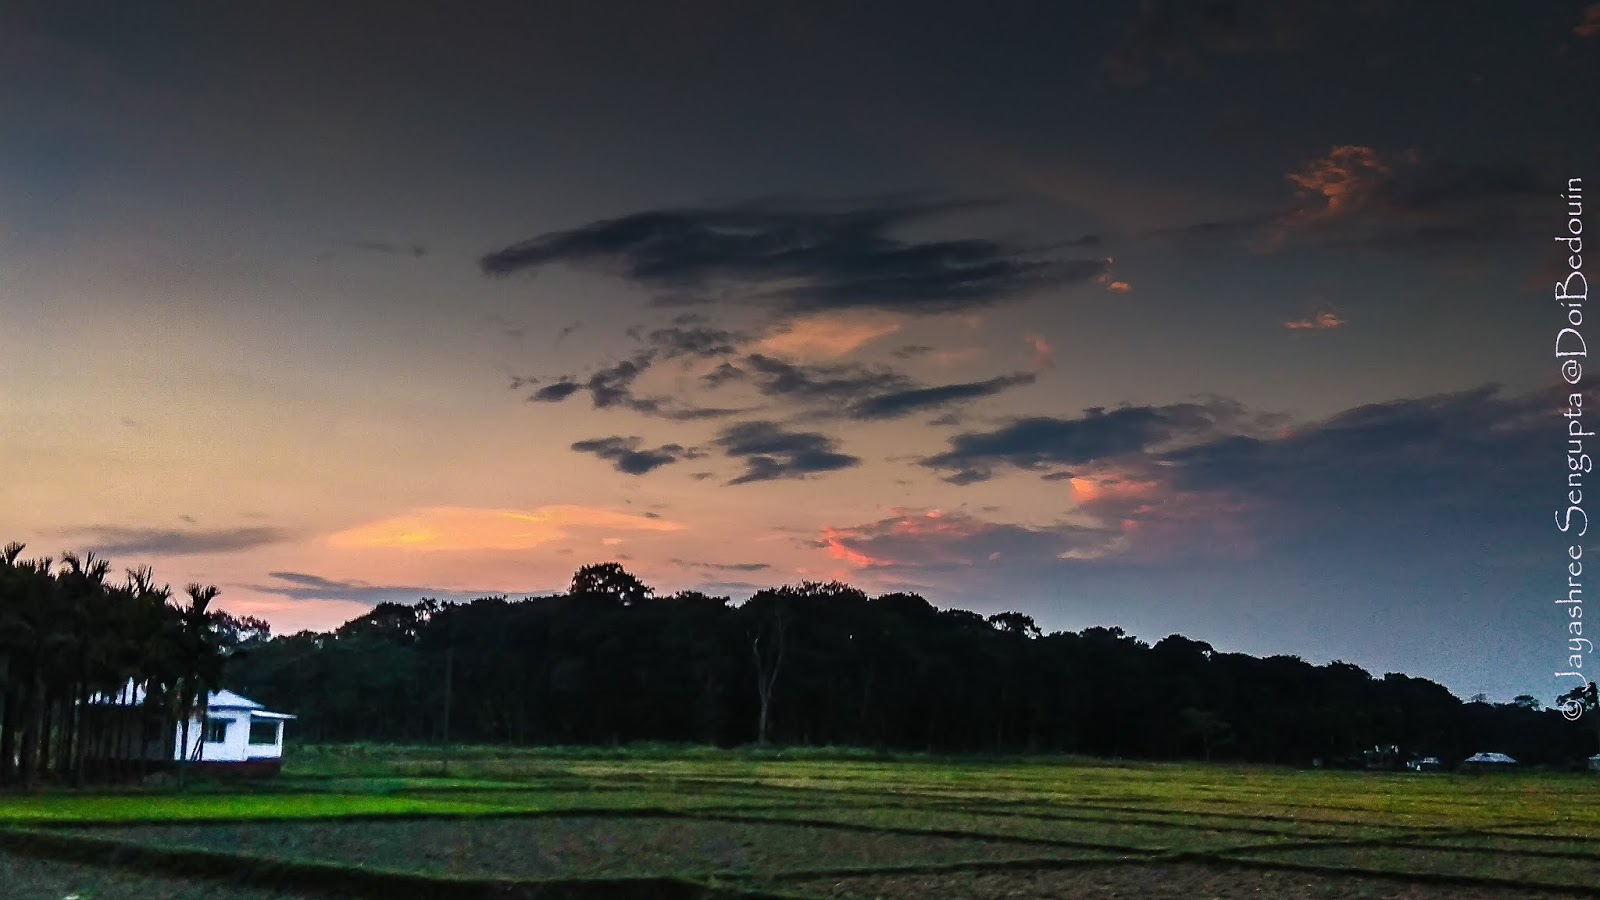 The rice field lightened by the dusky lights. @DoiBedouin